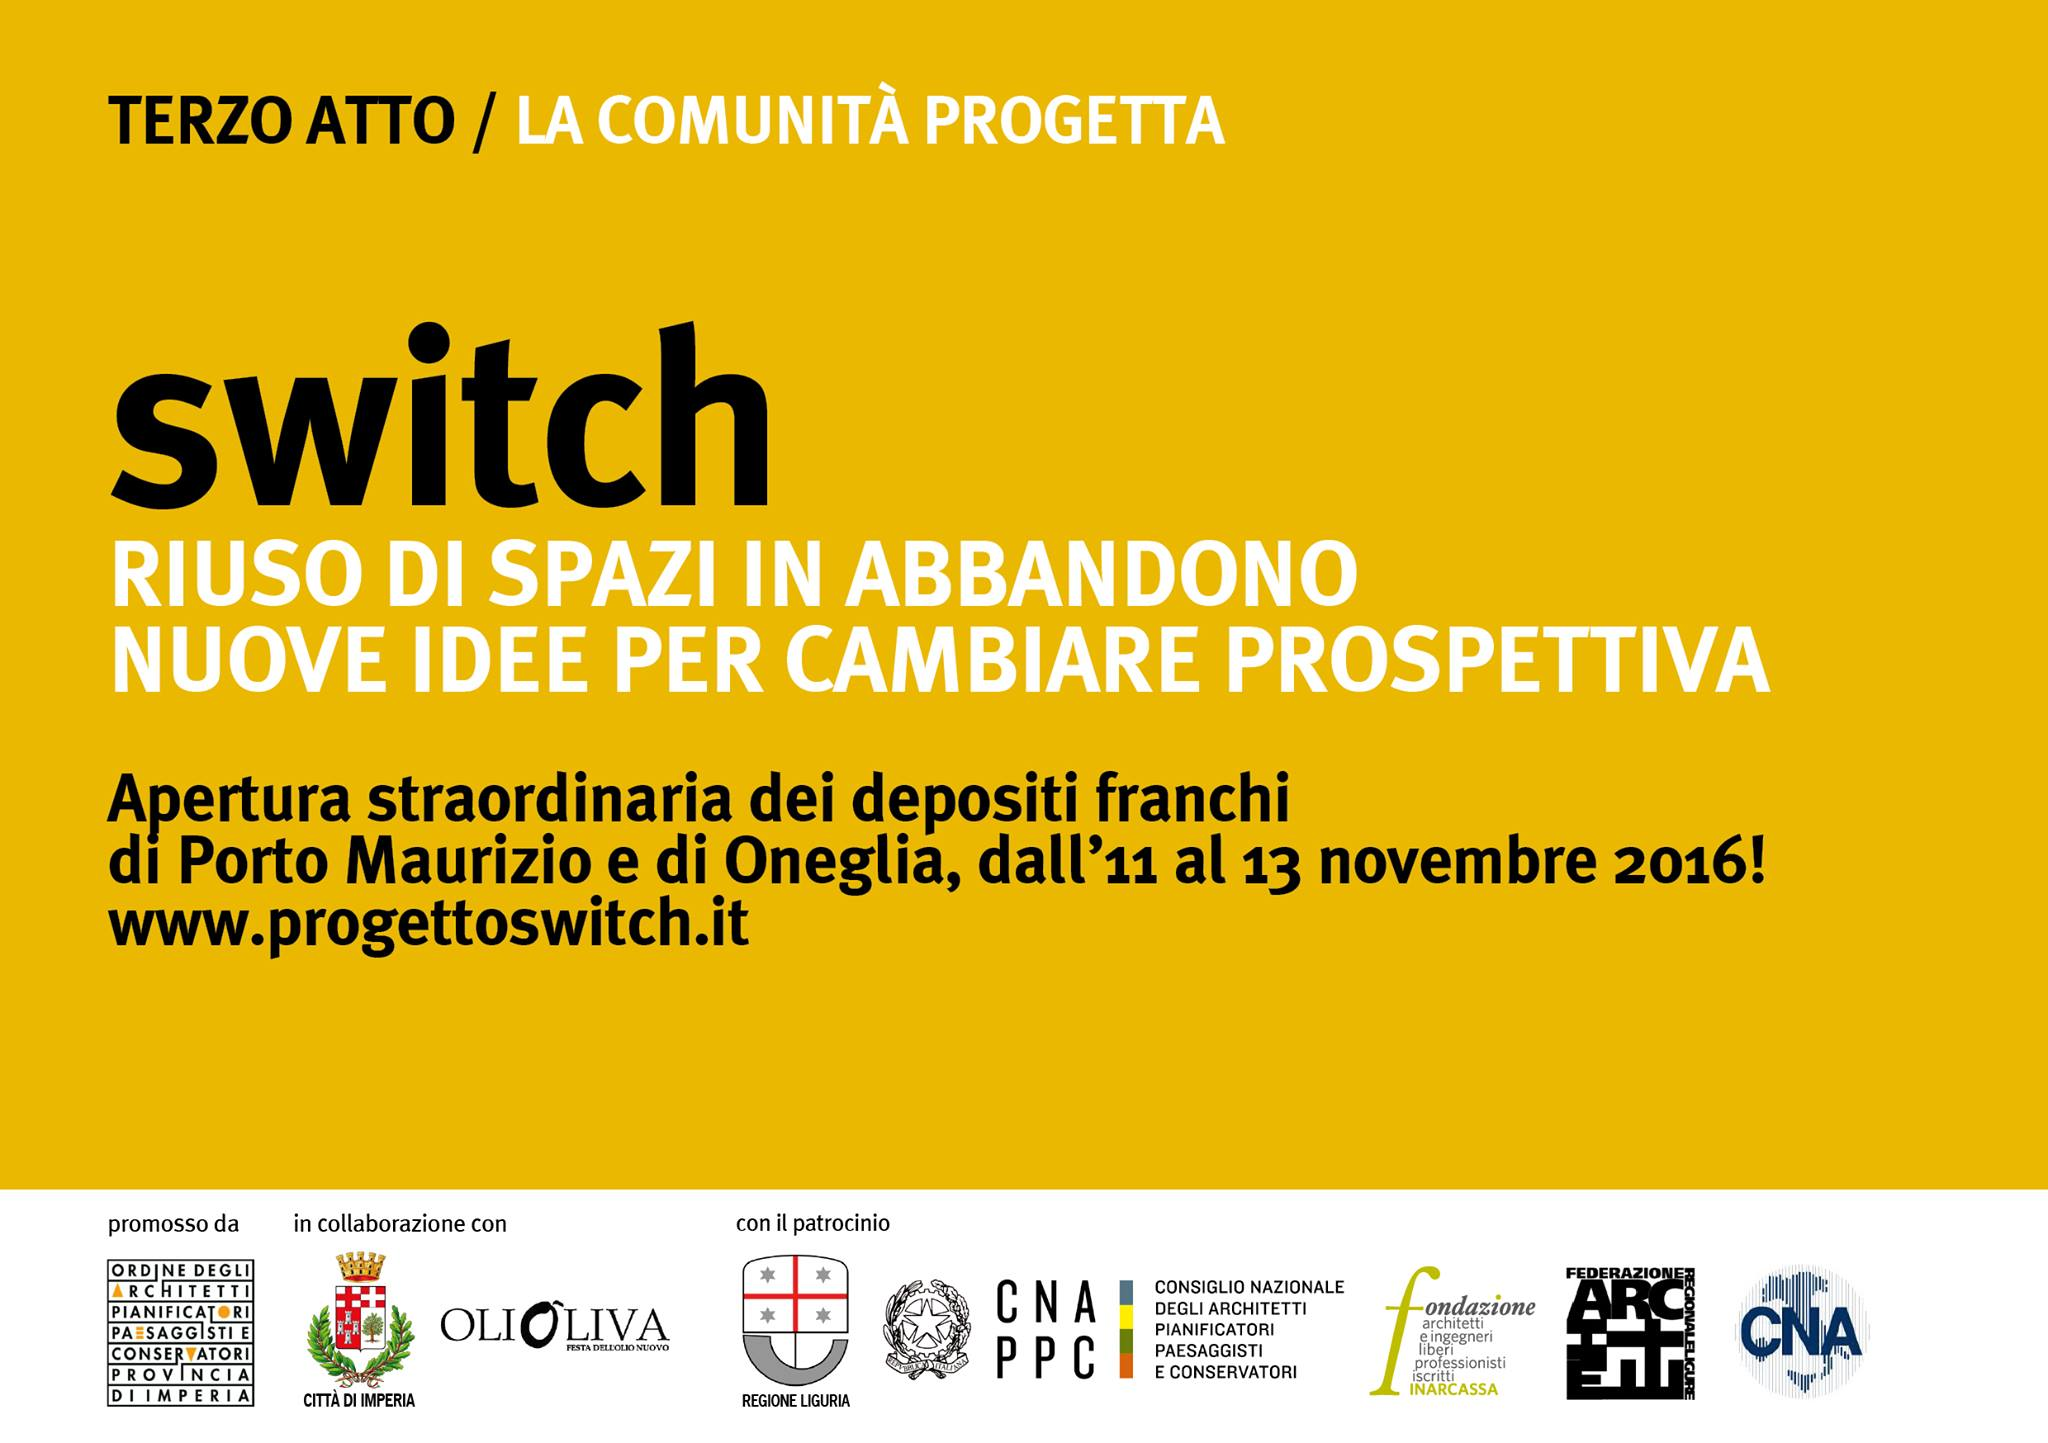 Sponsor evento Progetto Switch del 11-13 novembre 2016 - Imperia (IM)